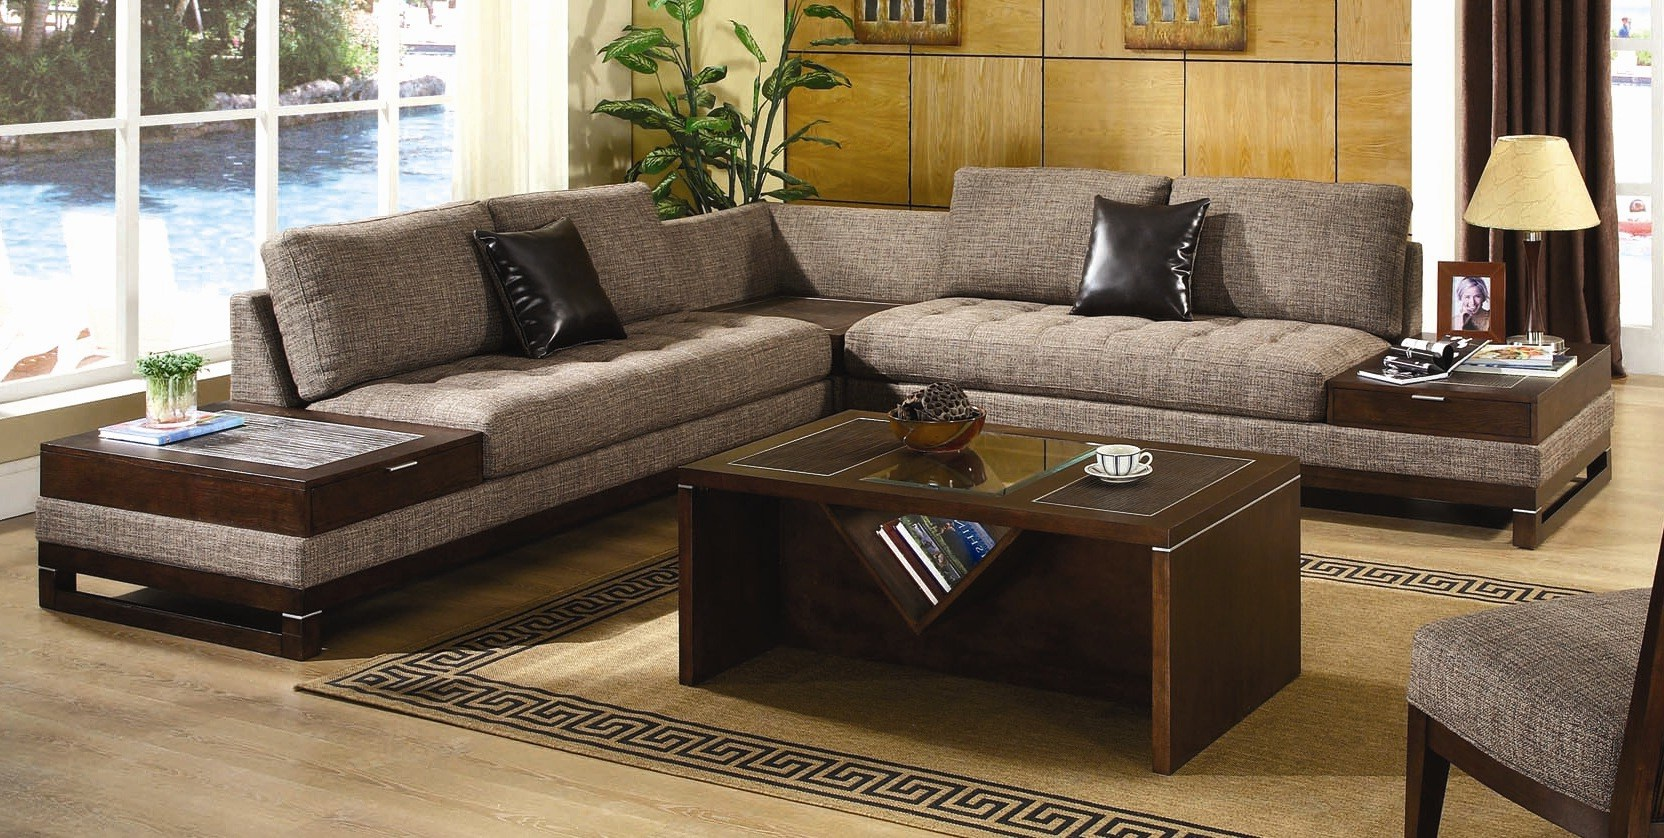 3 piece coffee table sets under 200 Living room coffee table sets